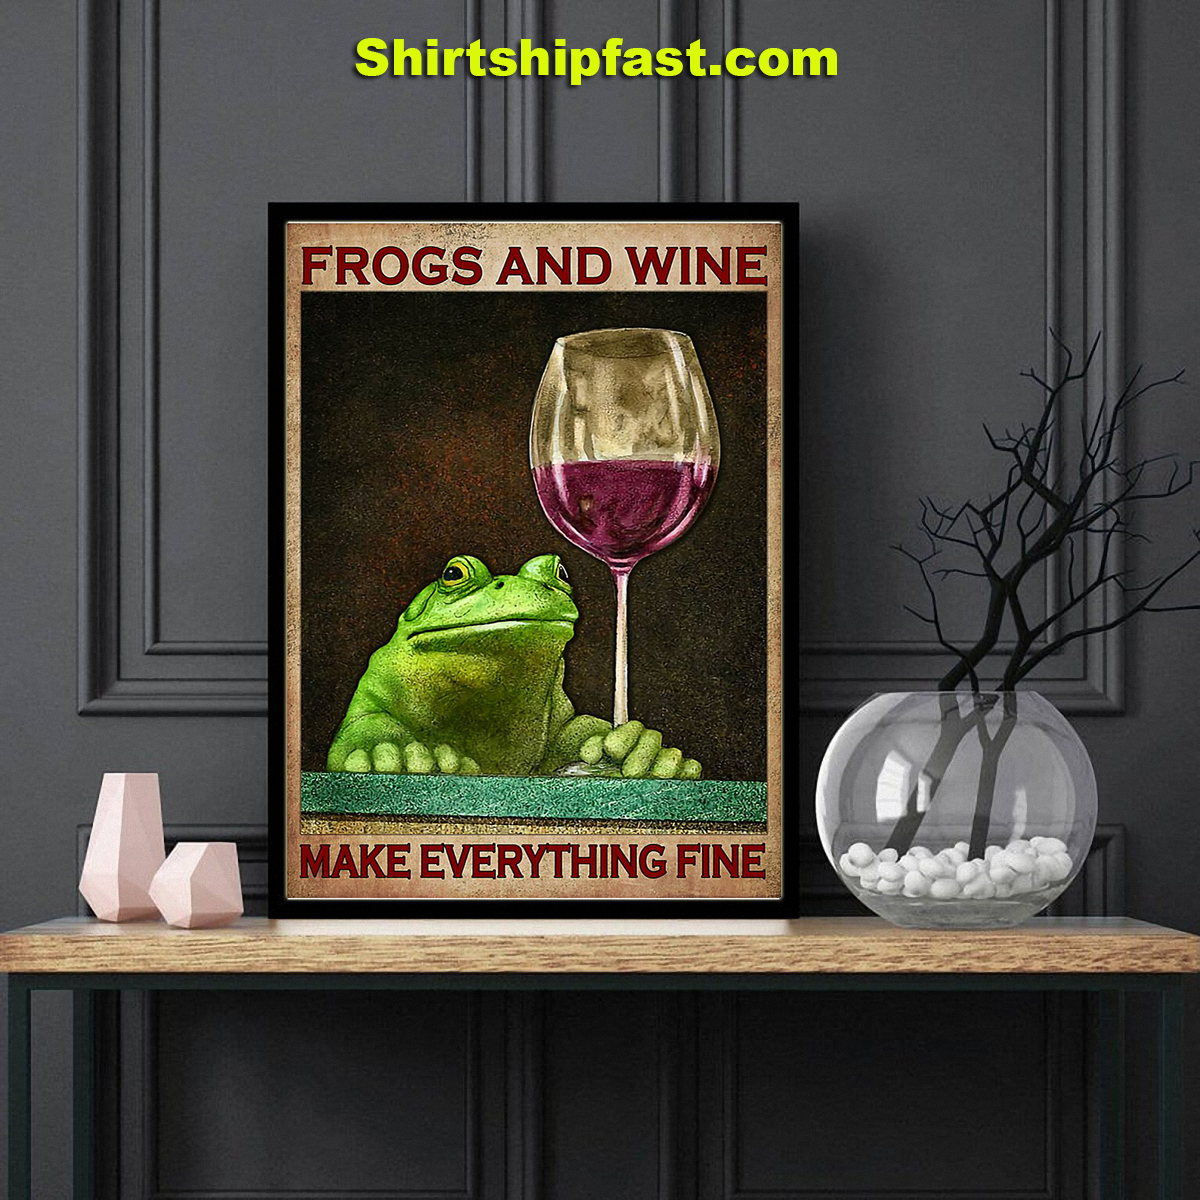 Frogs and wine make everything fine poster - Picture 2